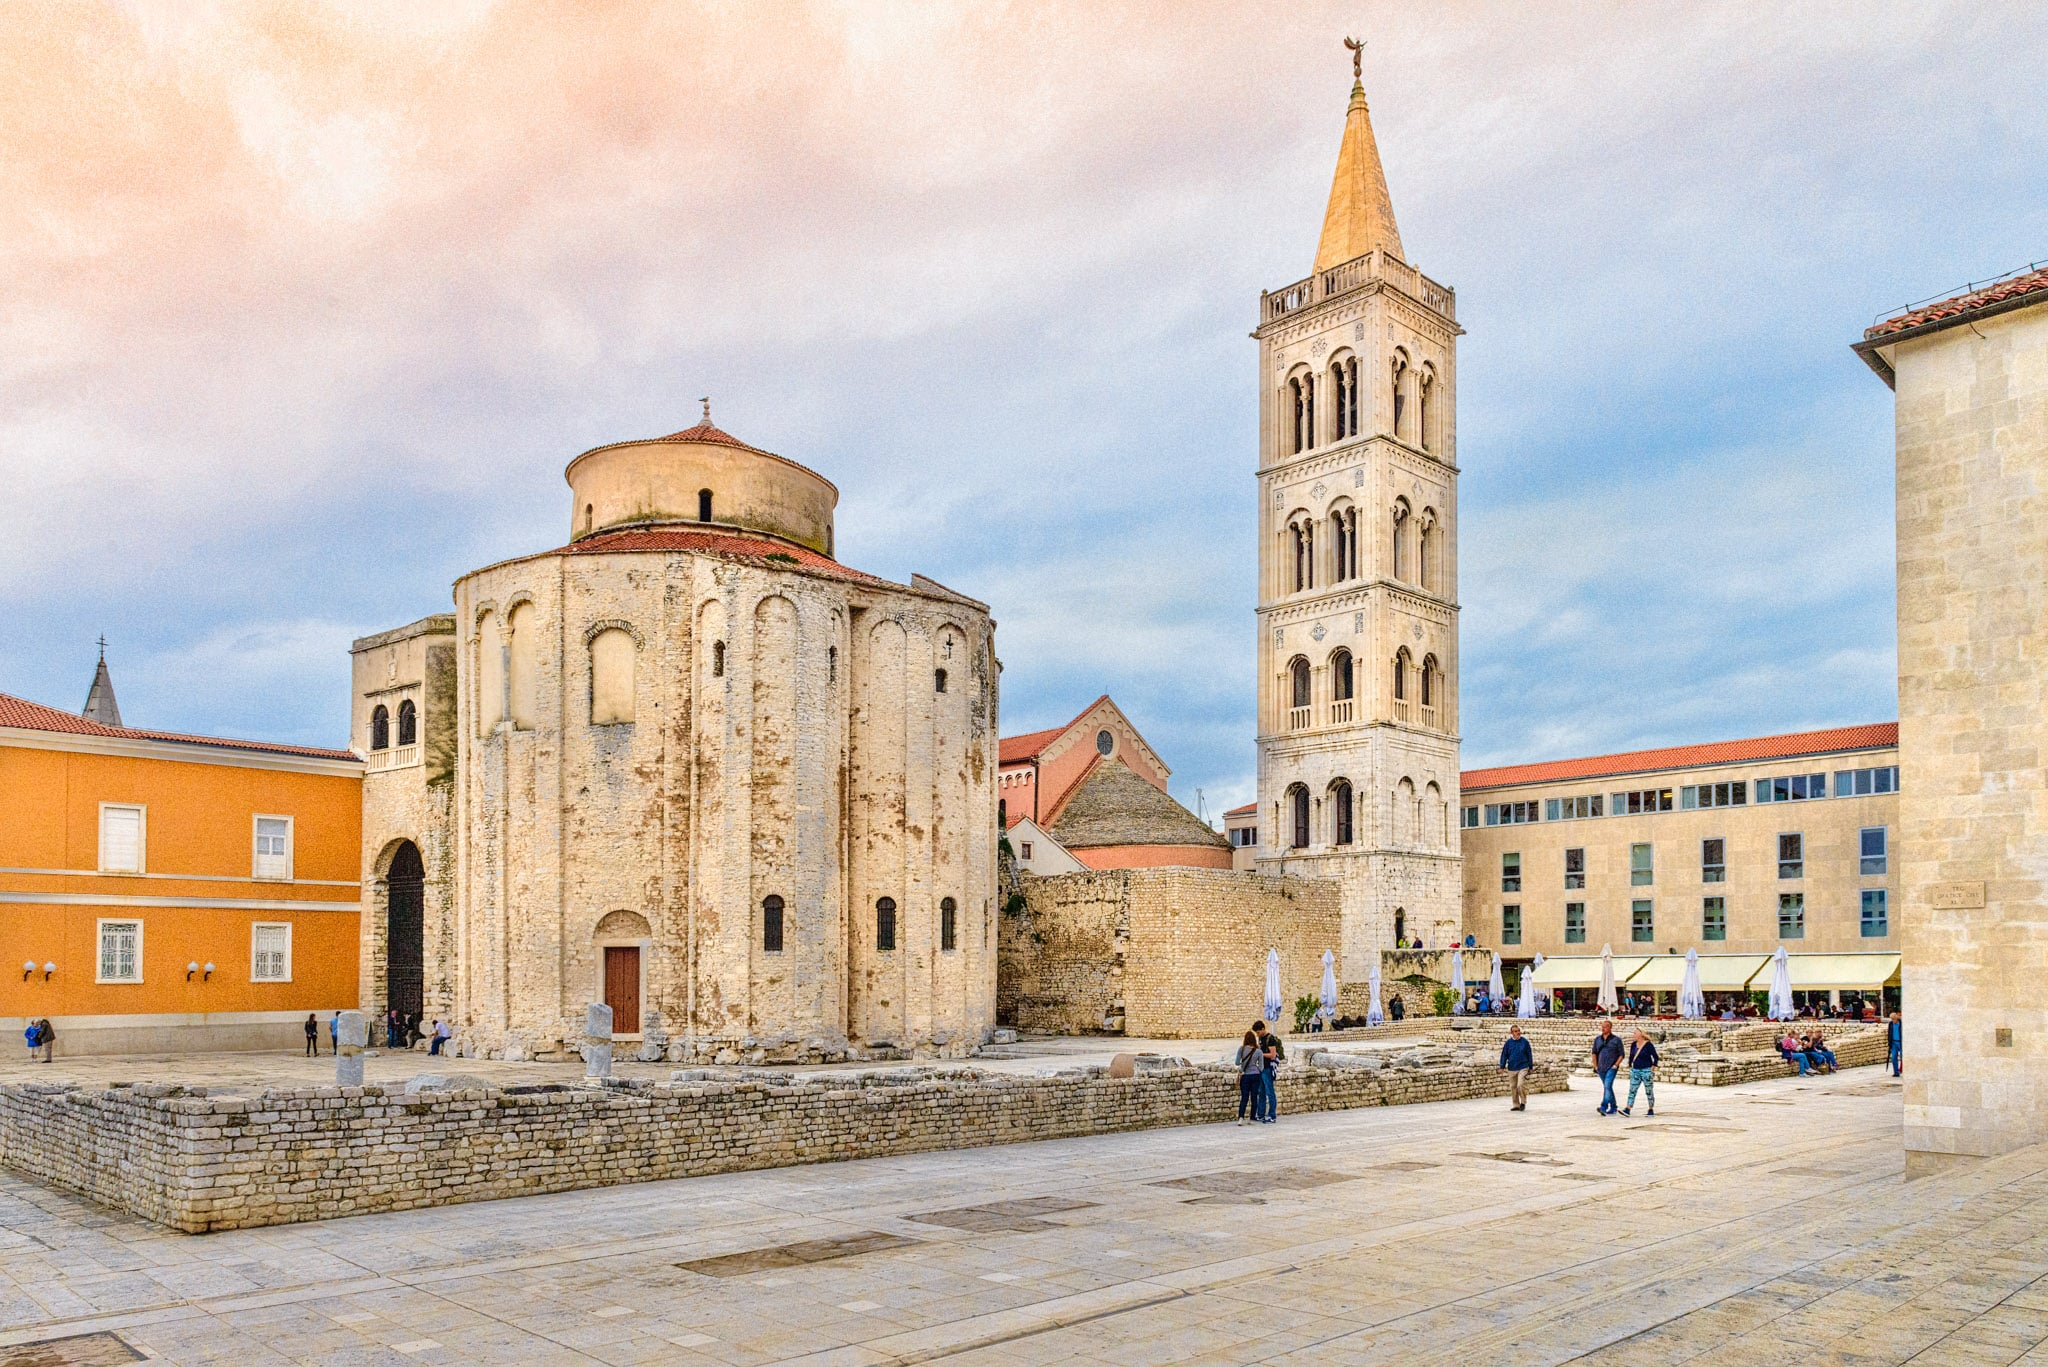 A view of the Romanesque Church of St. Donatus and the bell tower of the Cathedral of St. Anastasia adjacent to remnants of the Roman forum in the Illyrian city of Zadar in Croatia.